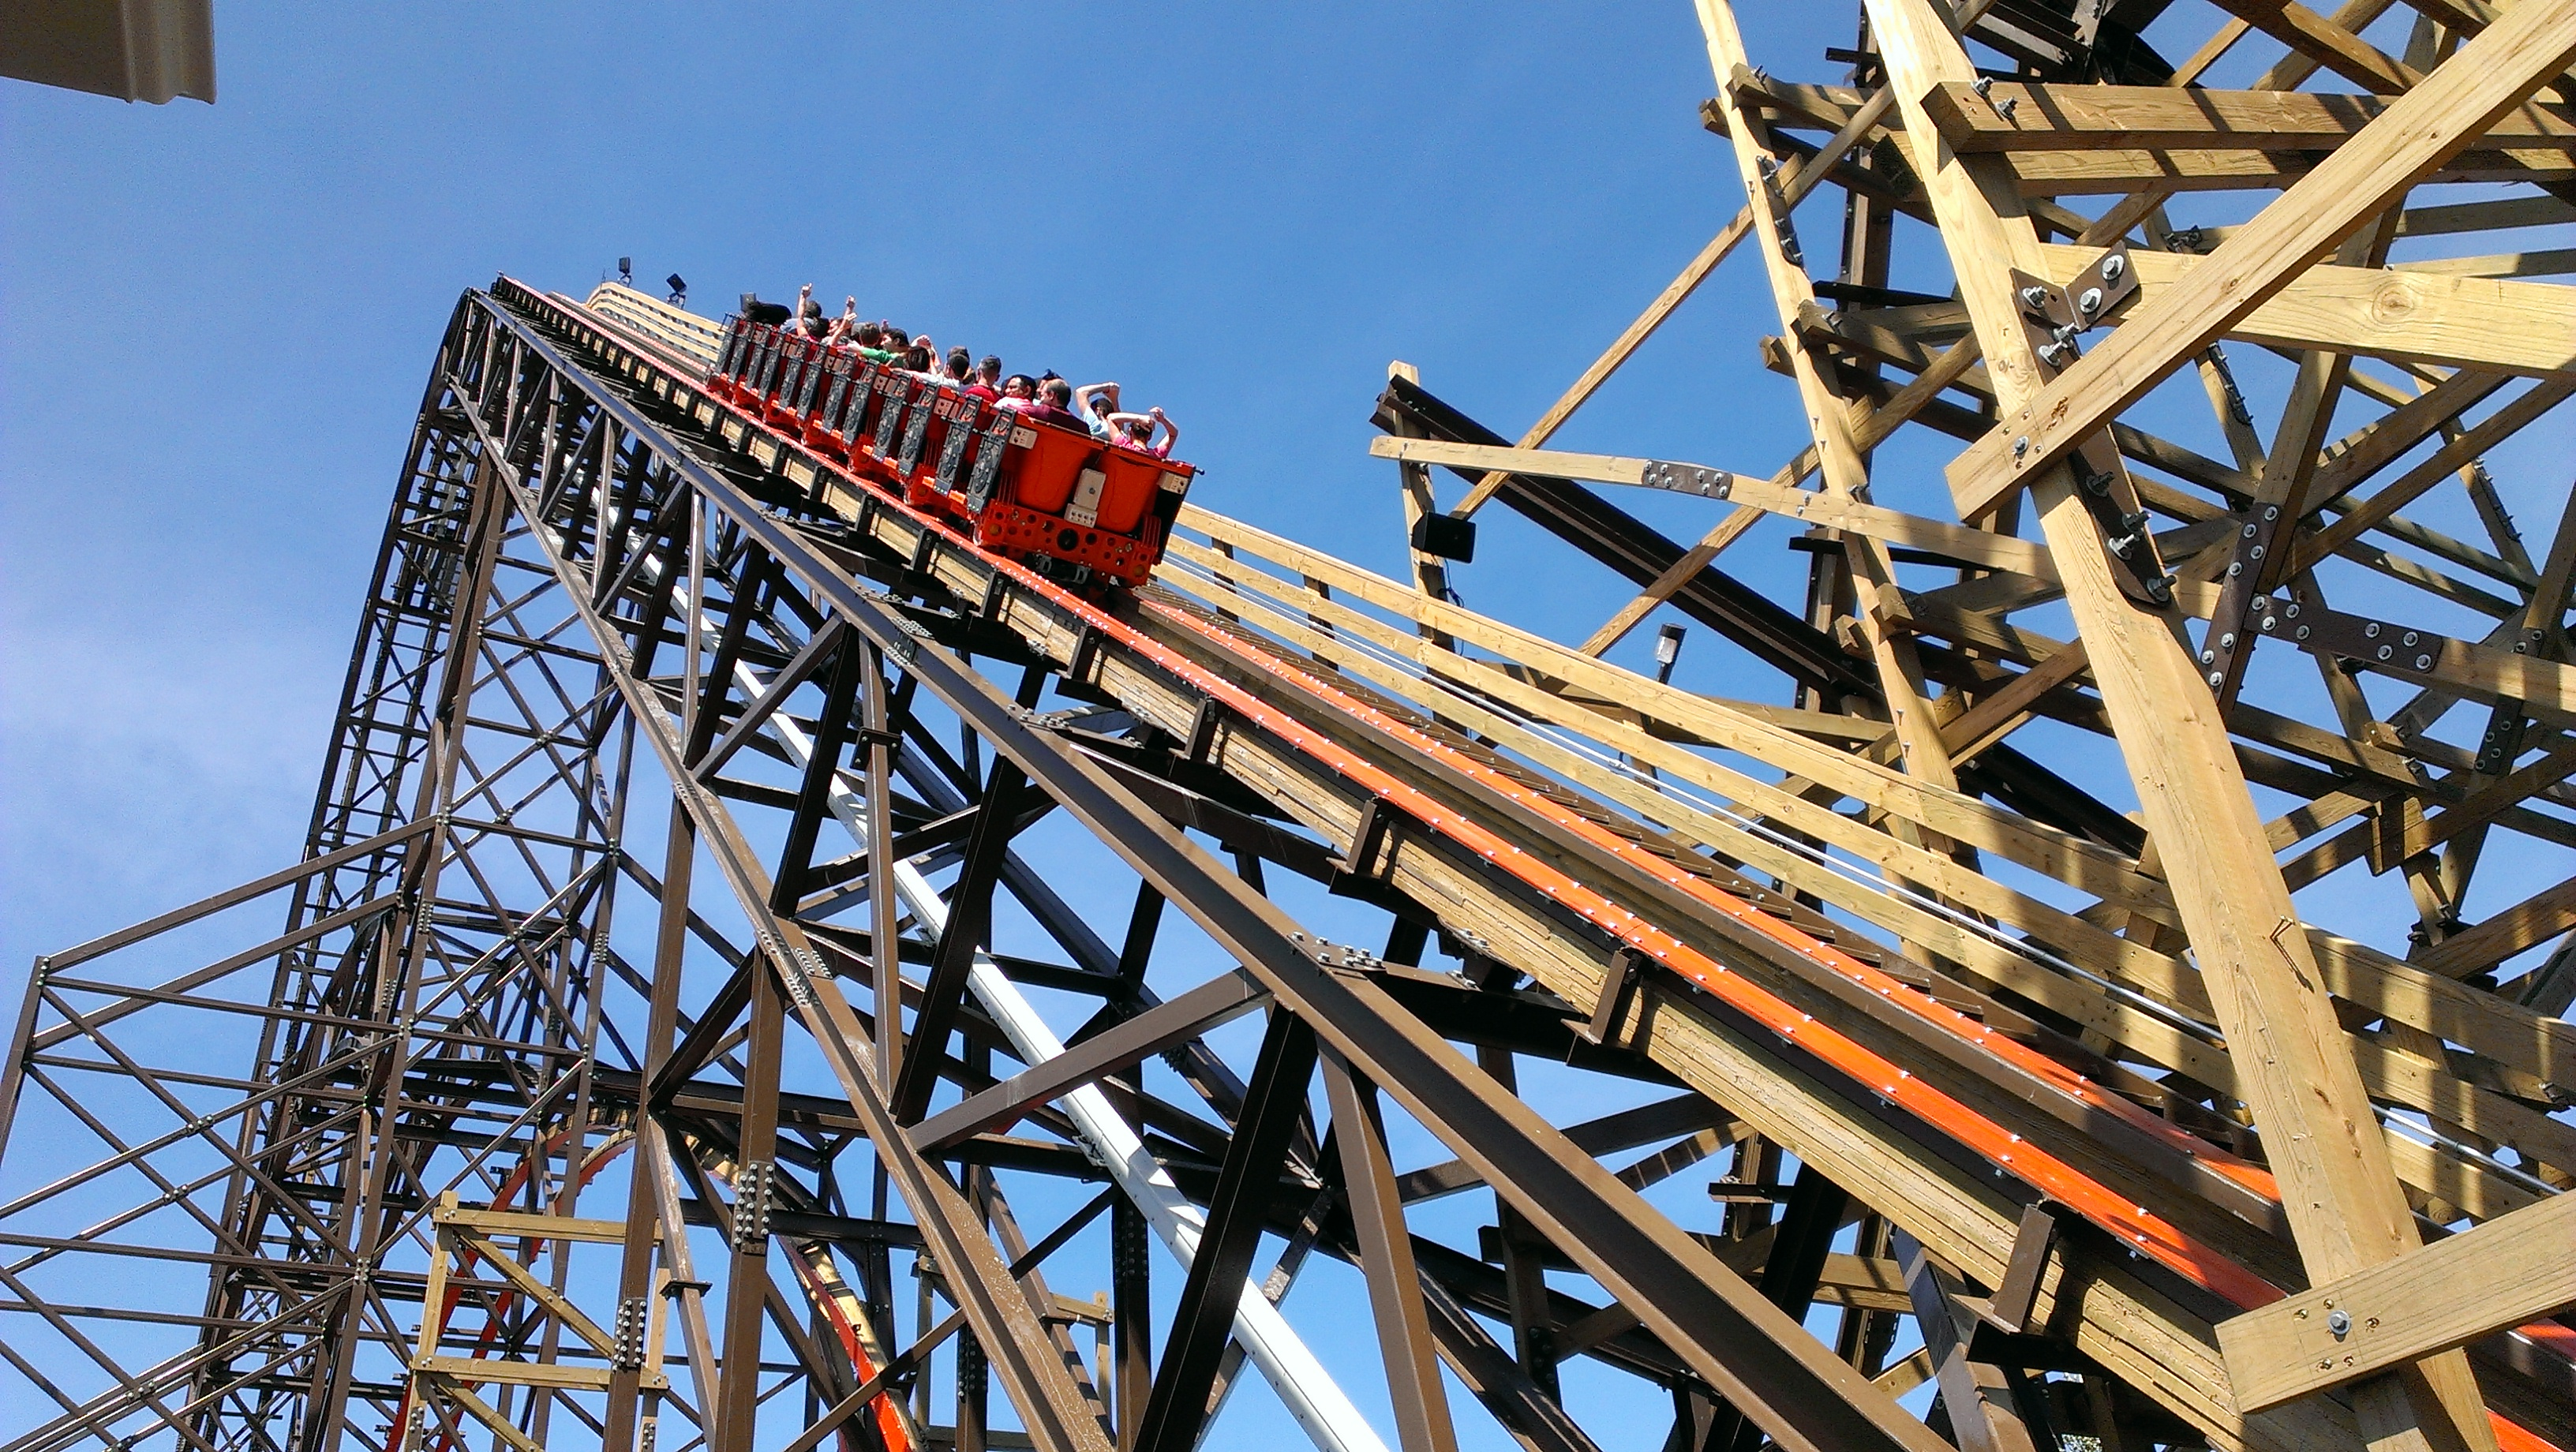 Goliath-Great-America-02